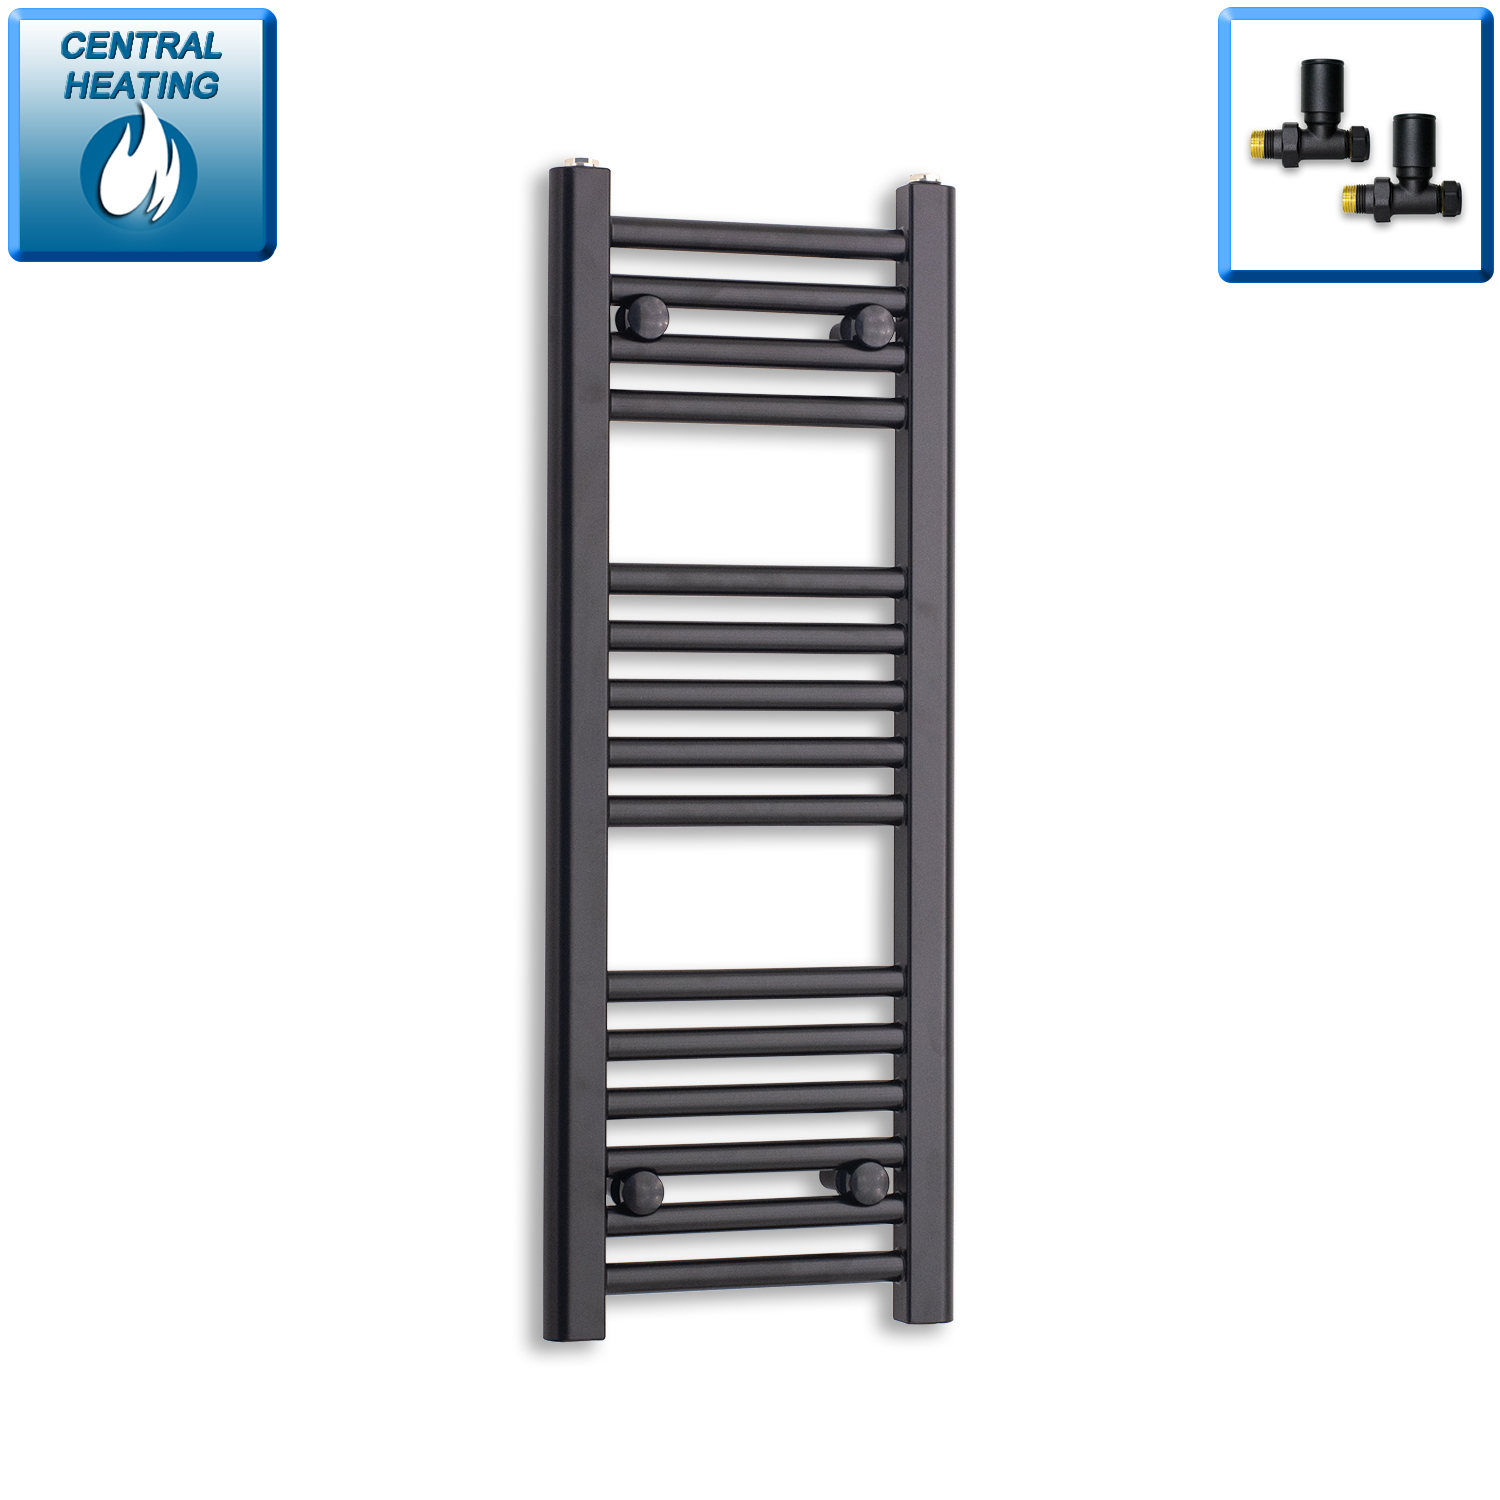 300mm Wide 800mm High Black Towel Rail Radiator With Straight Valve